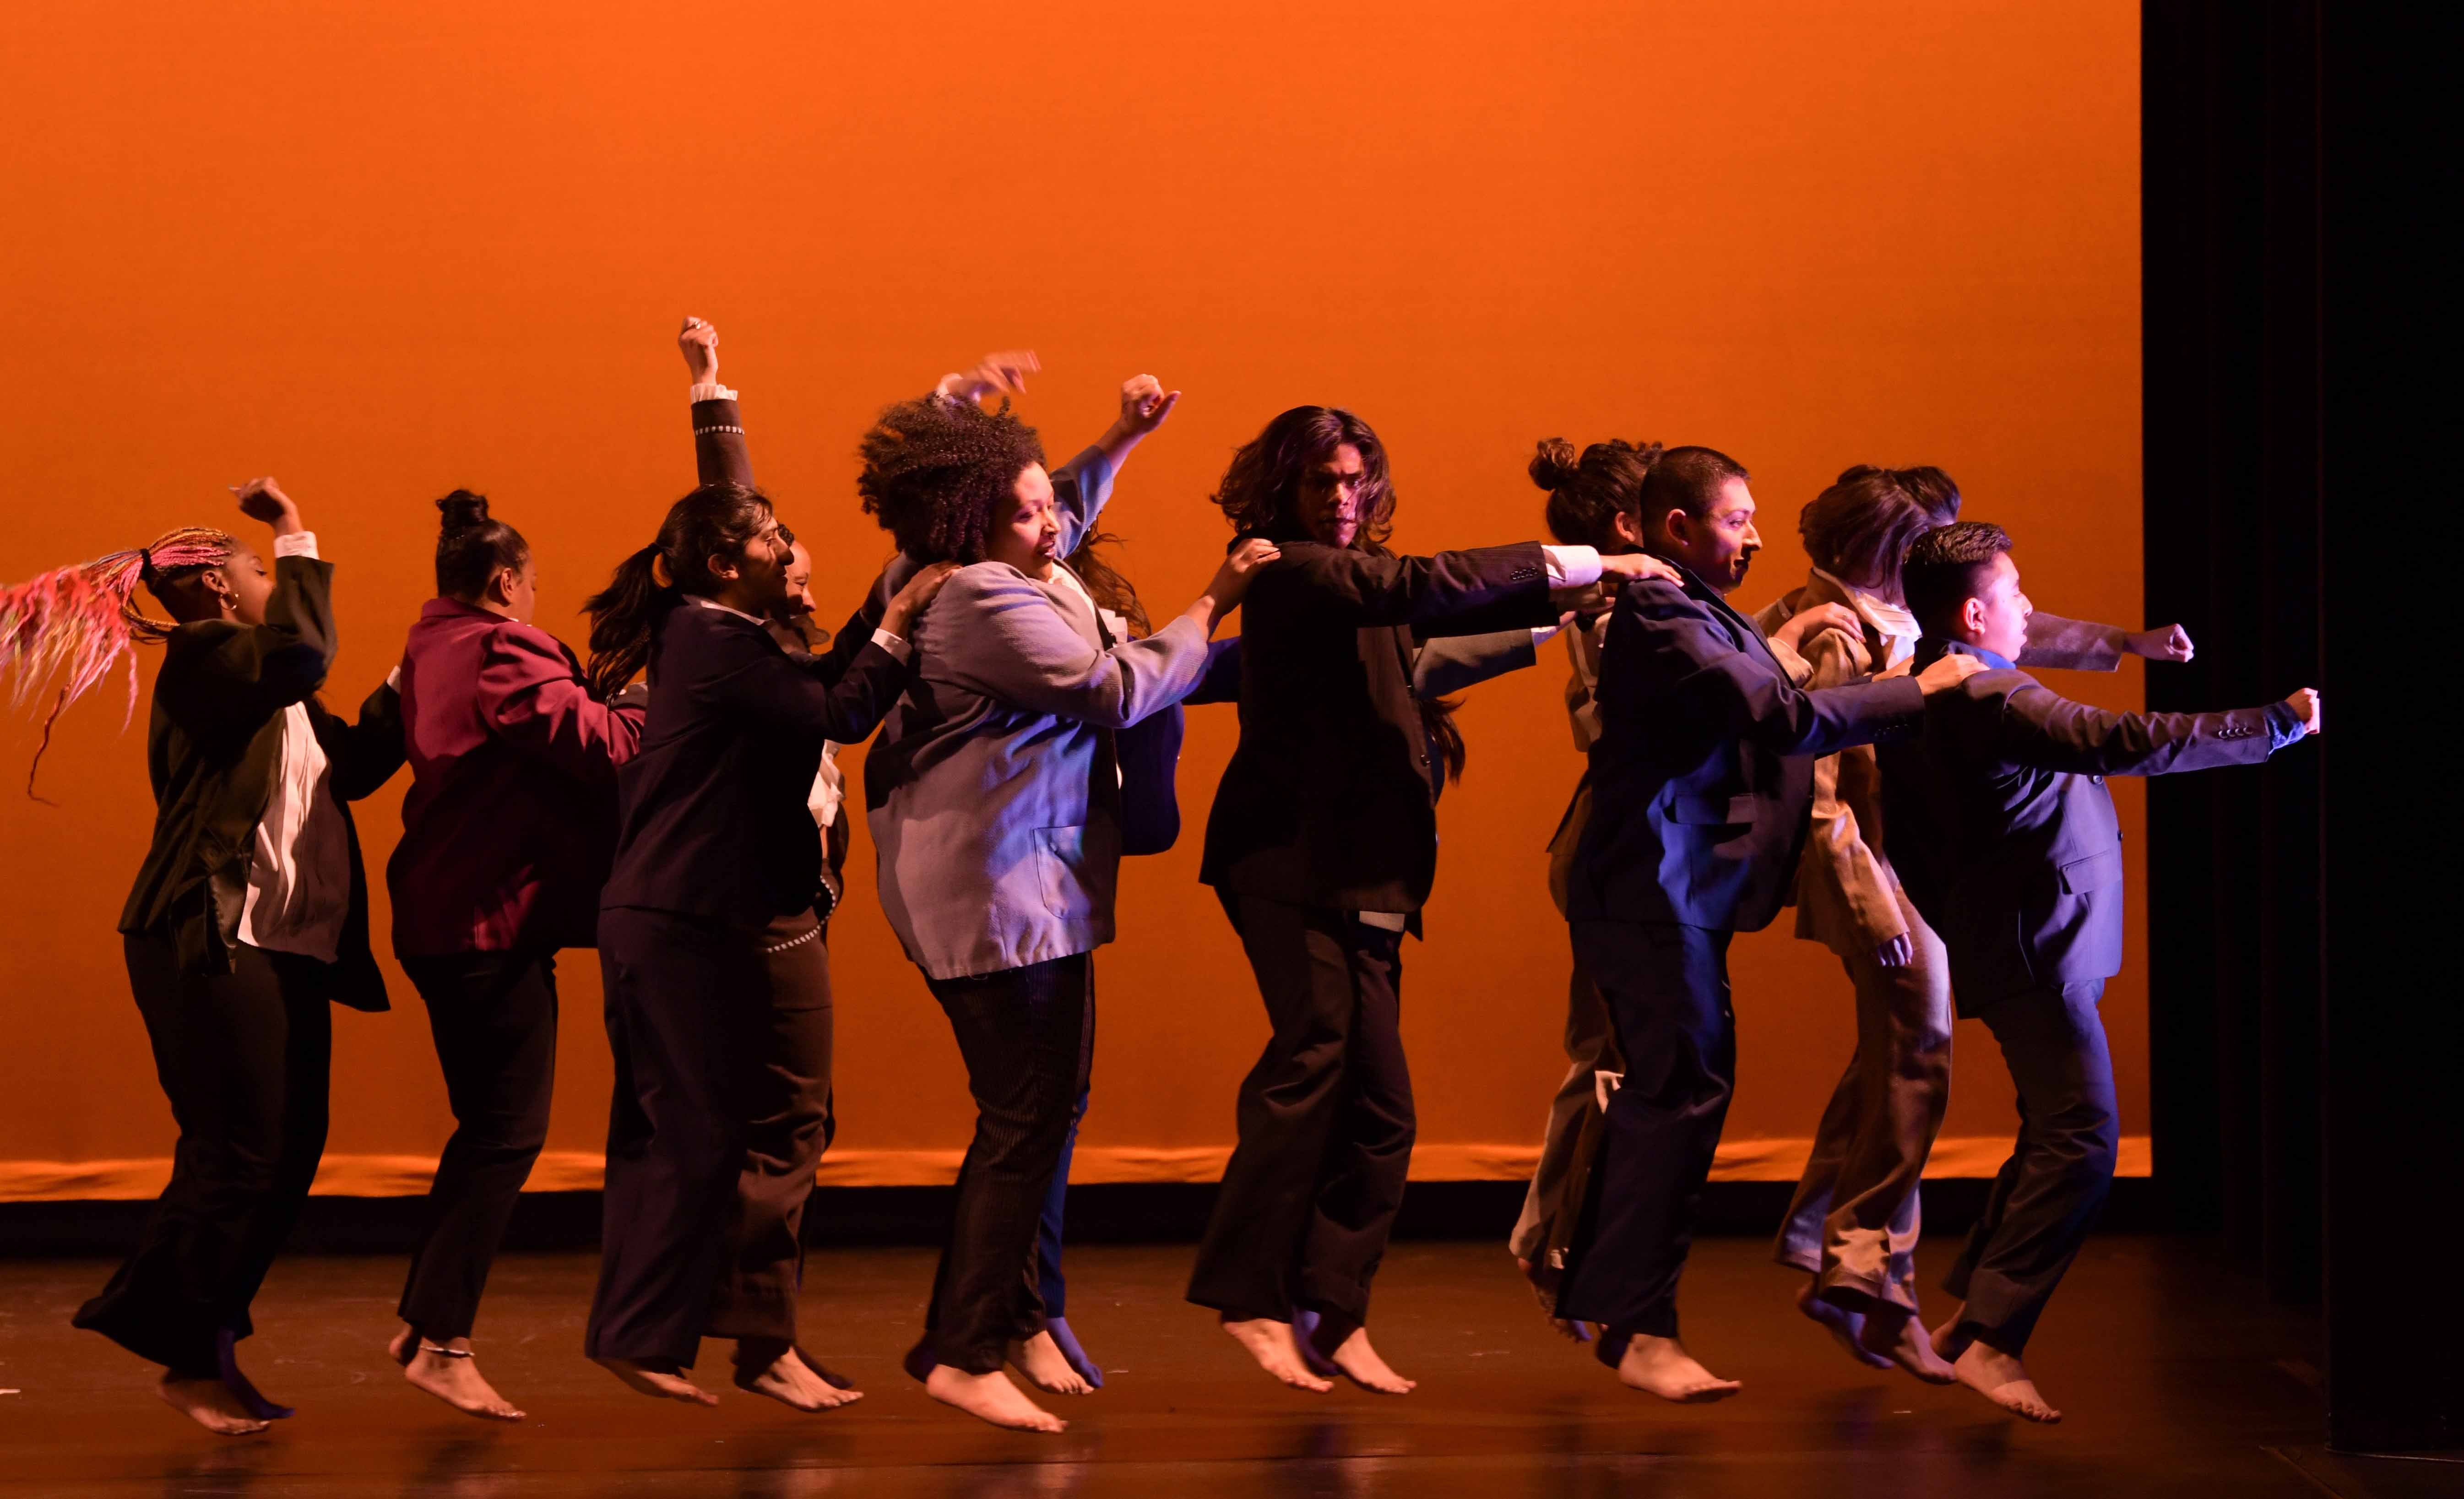 El Camino College's student dance ensembles will present several performances this fall, showcasing a variety of themes and dance styles.